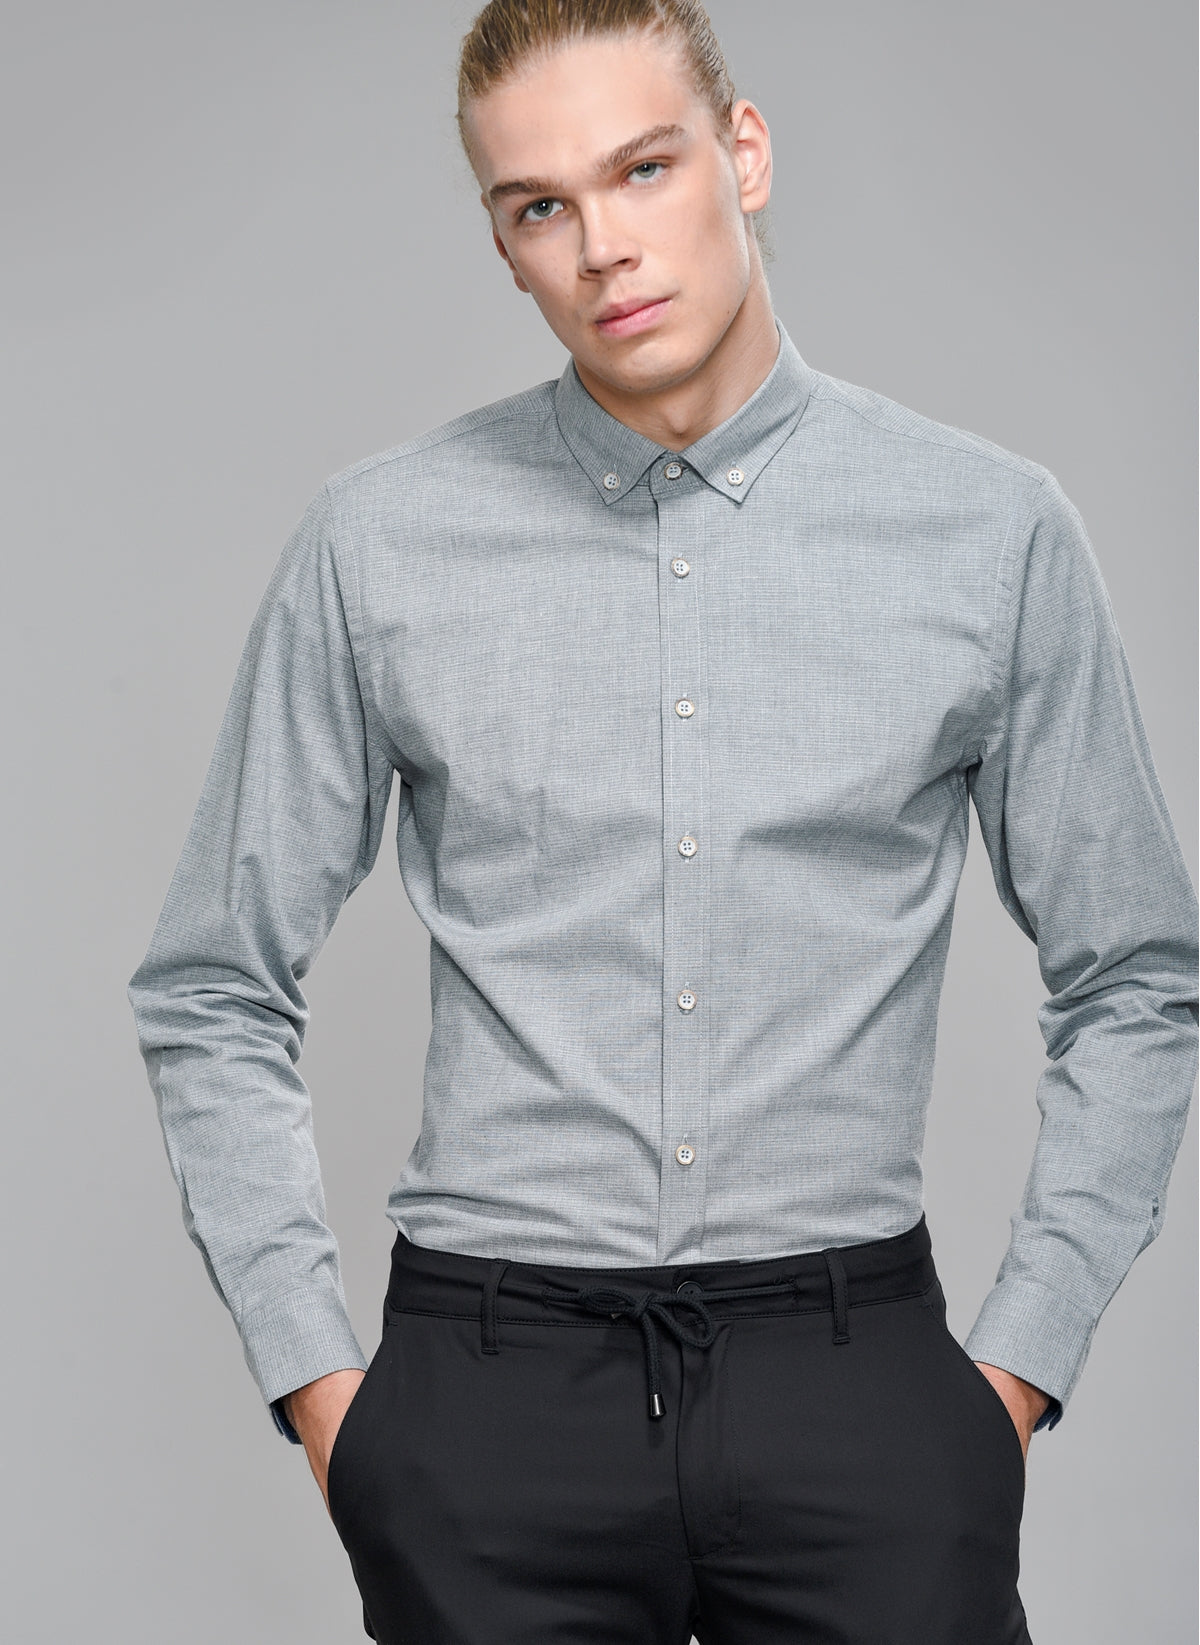 Textured Stretch Shirt in Grey